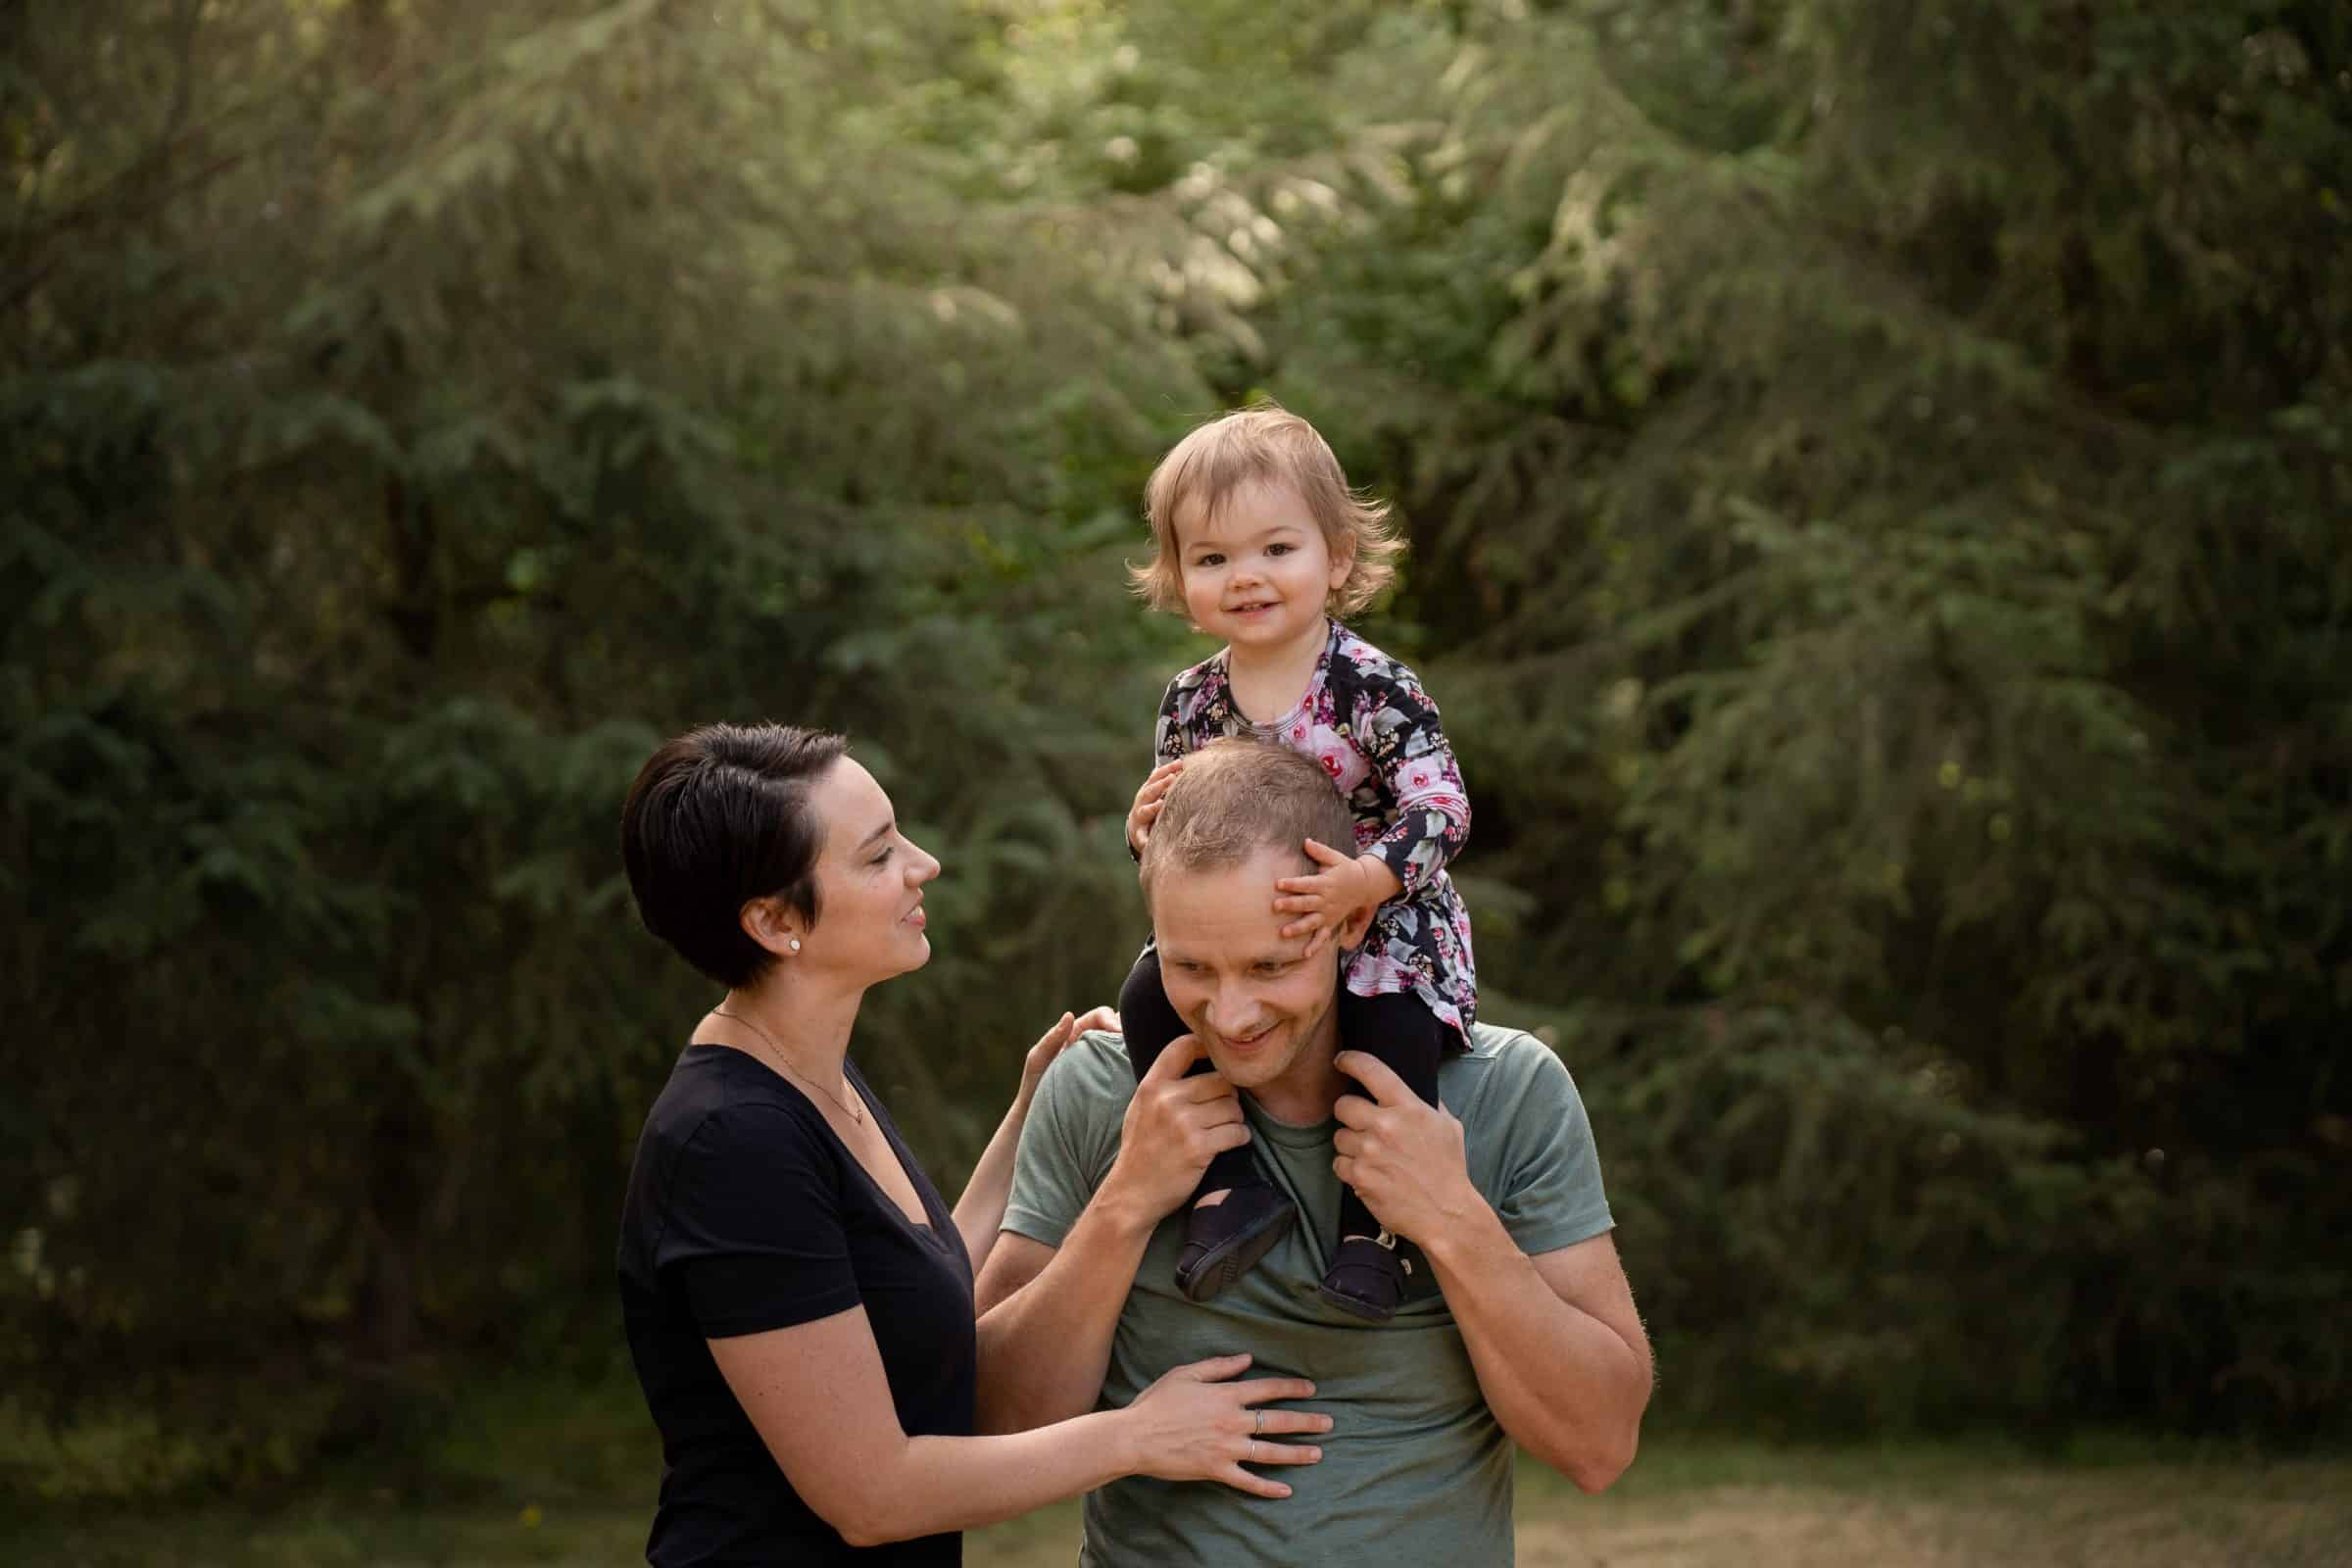 family photo with toddler girl on dad's shoulders smiling at camera